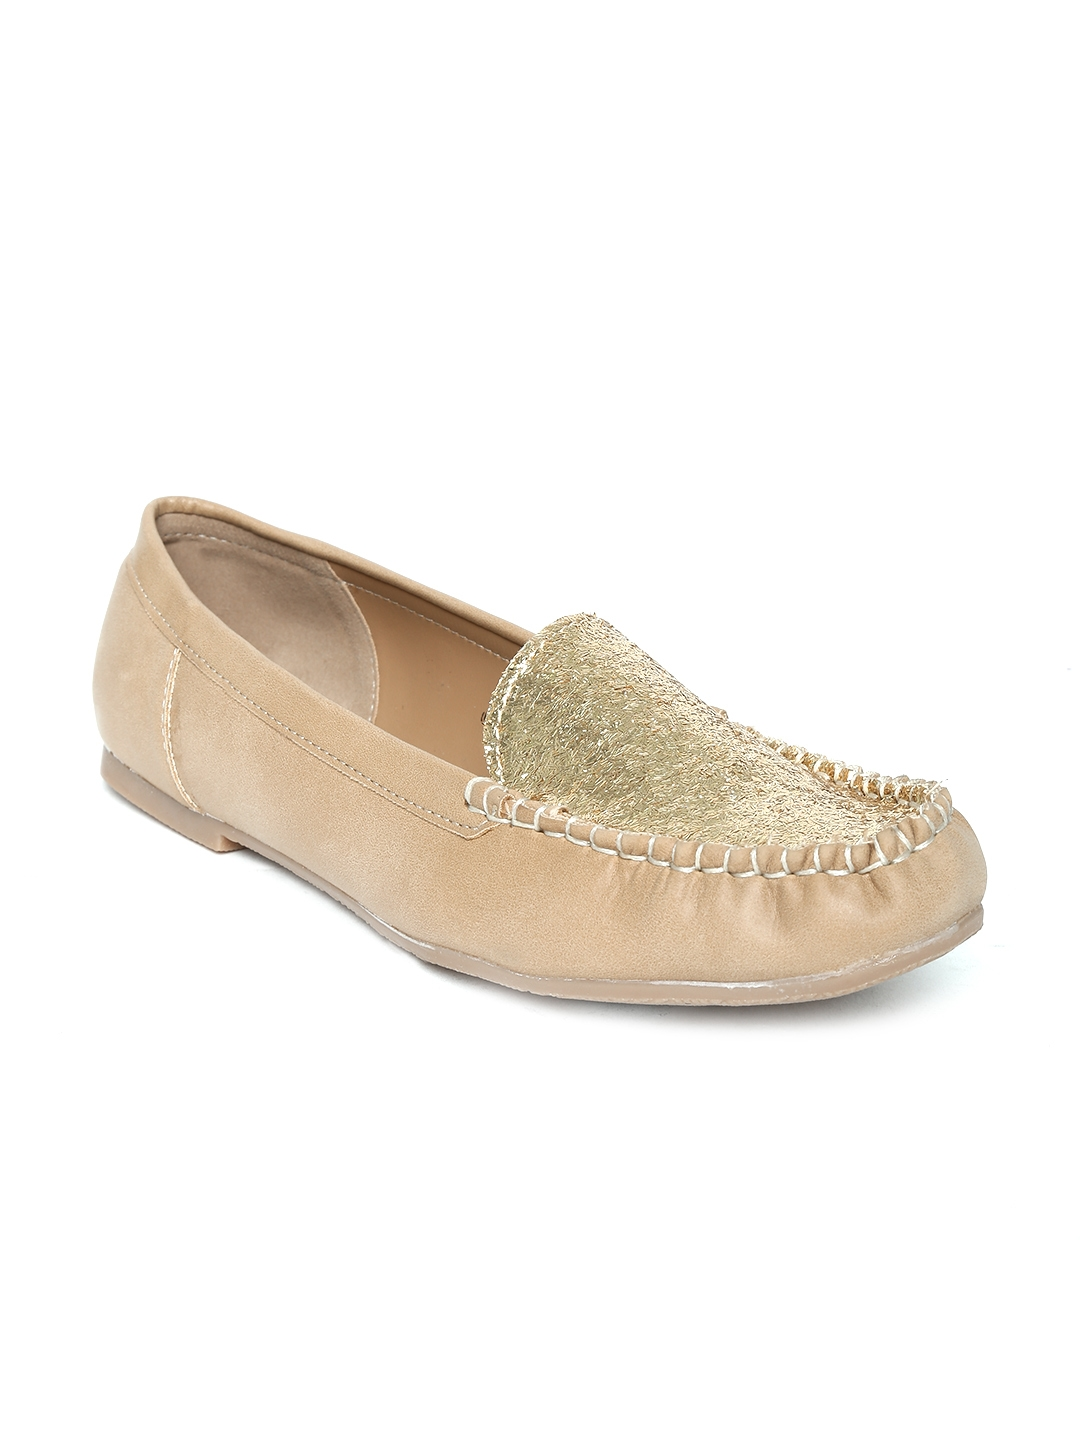 a876464a3031 Buy Footin By Bata Women Gold Toned   Beige Shimmer Flat Shoes ...